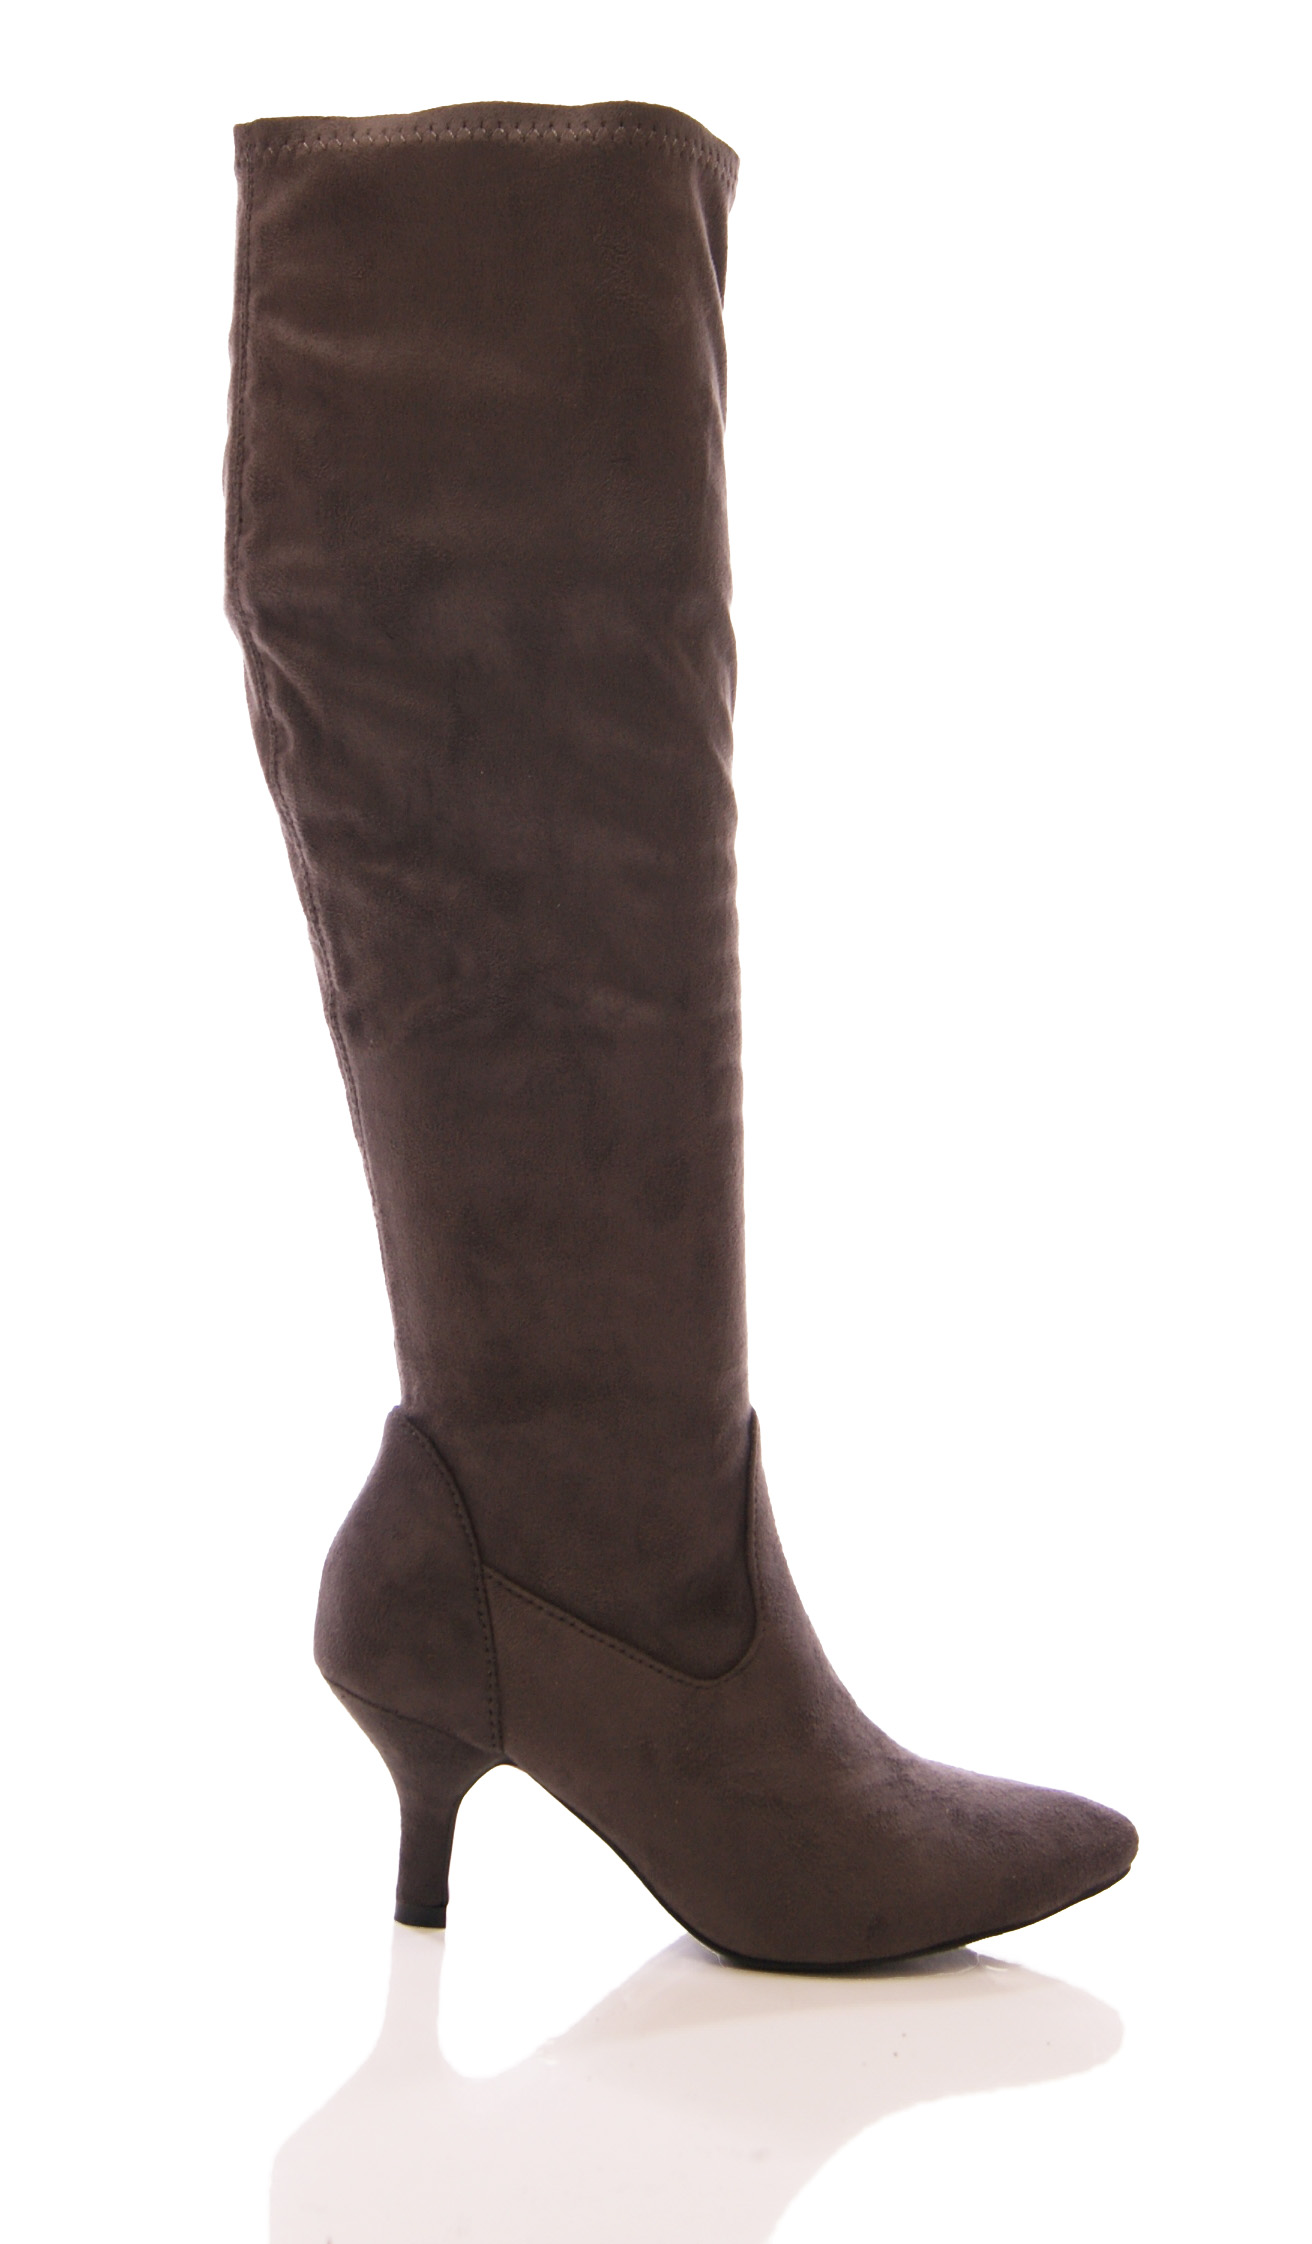 Find a great selection of narrow-calf boots for women at roeprocjfc.ga Shop narrow calf boots by Steve Madden, Cole Haan, Naturalizer and more. Always free shipping & returns.